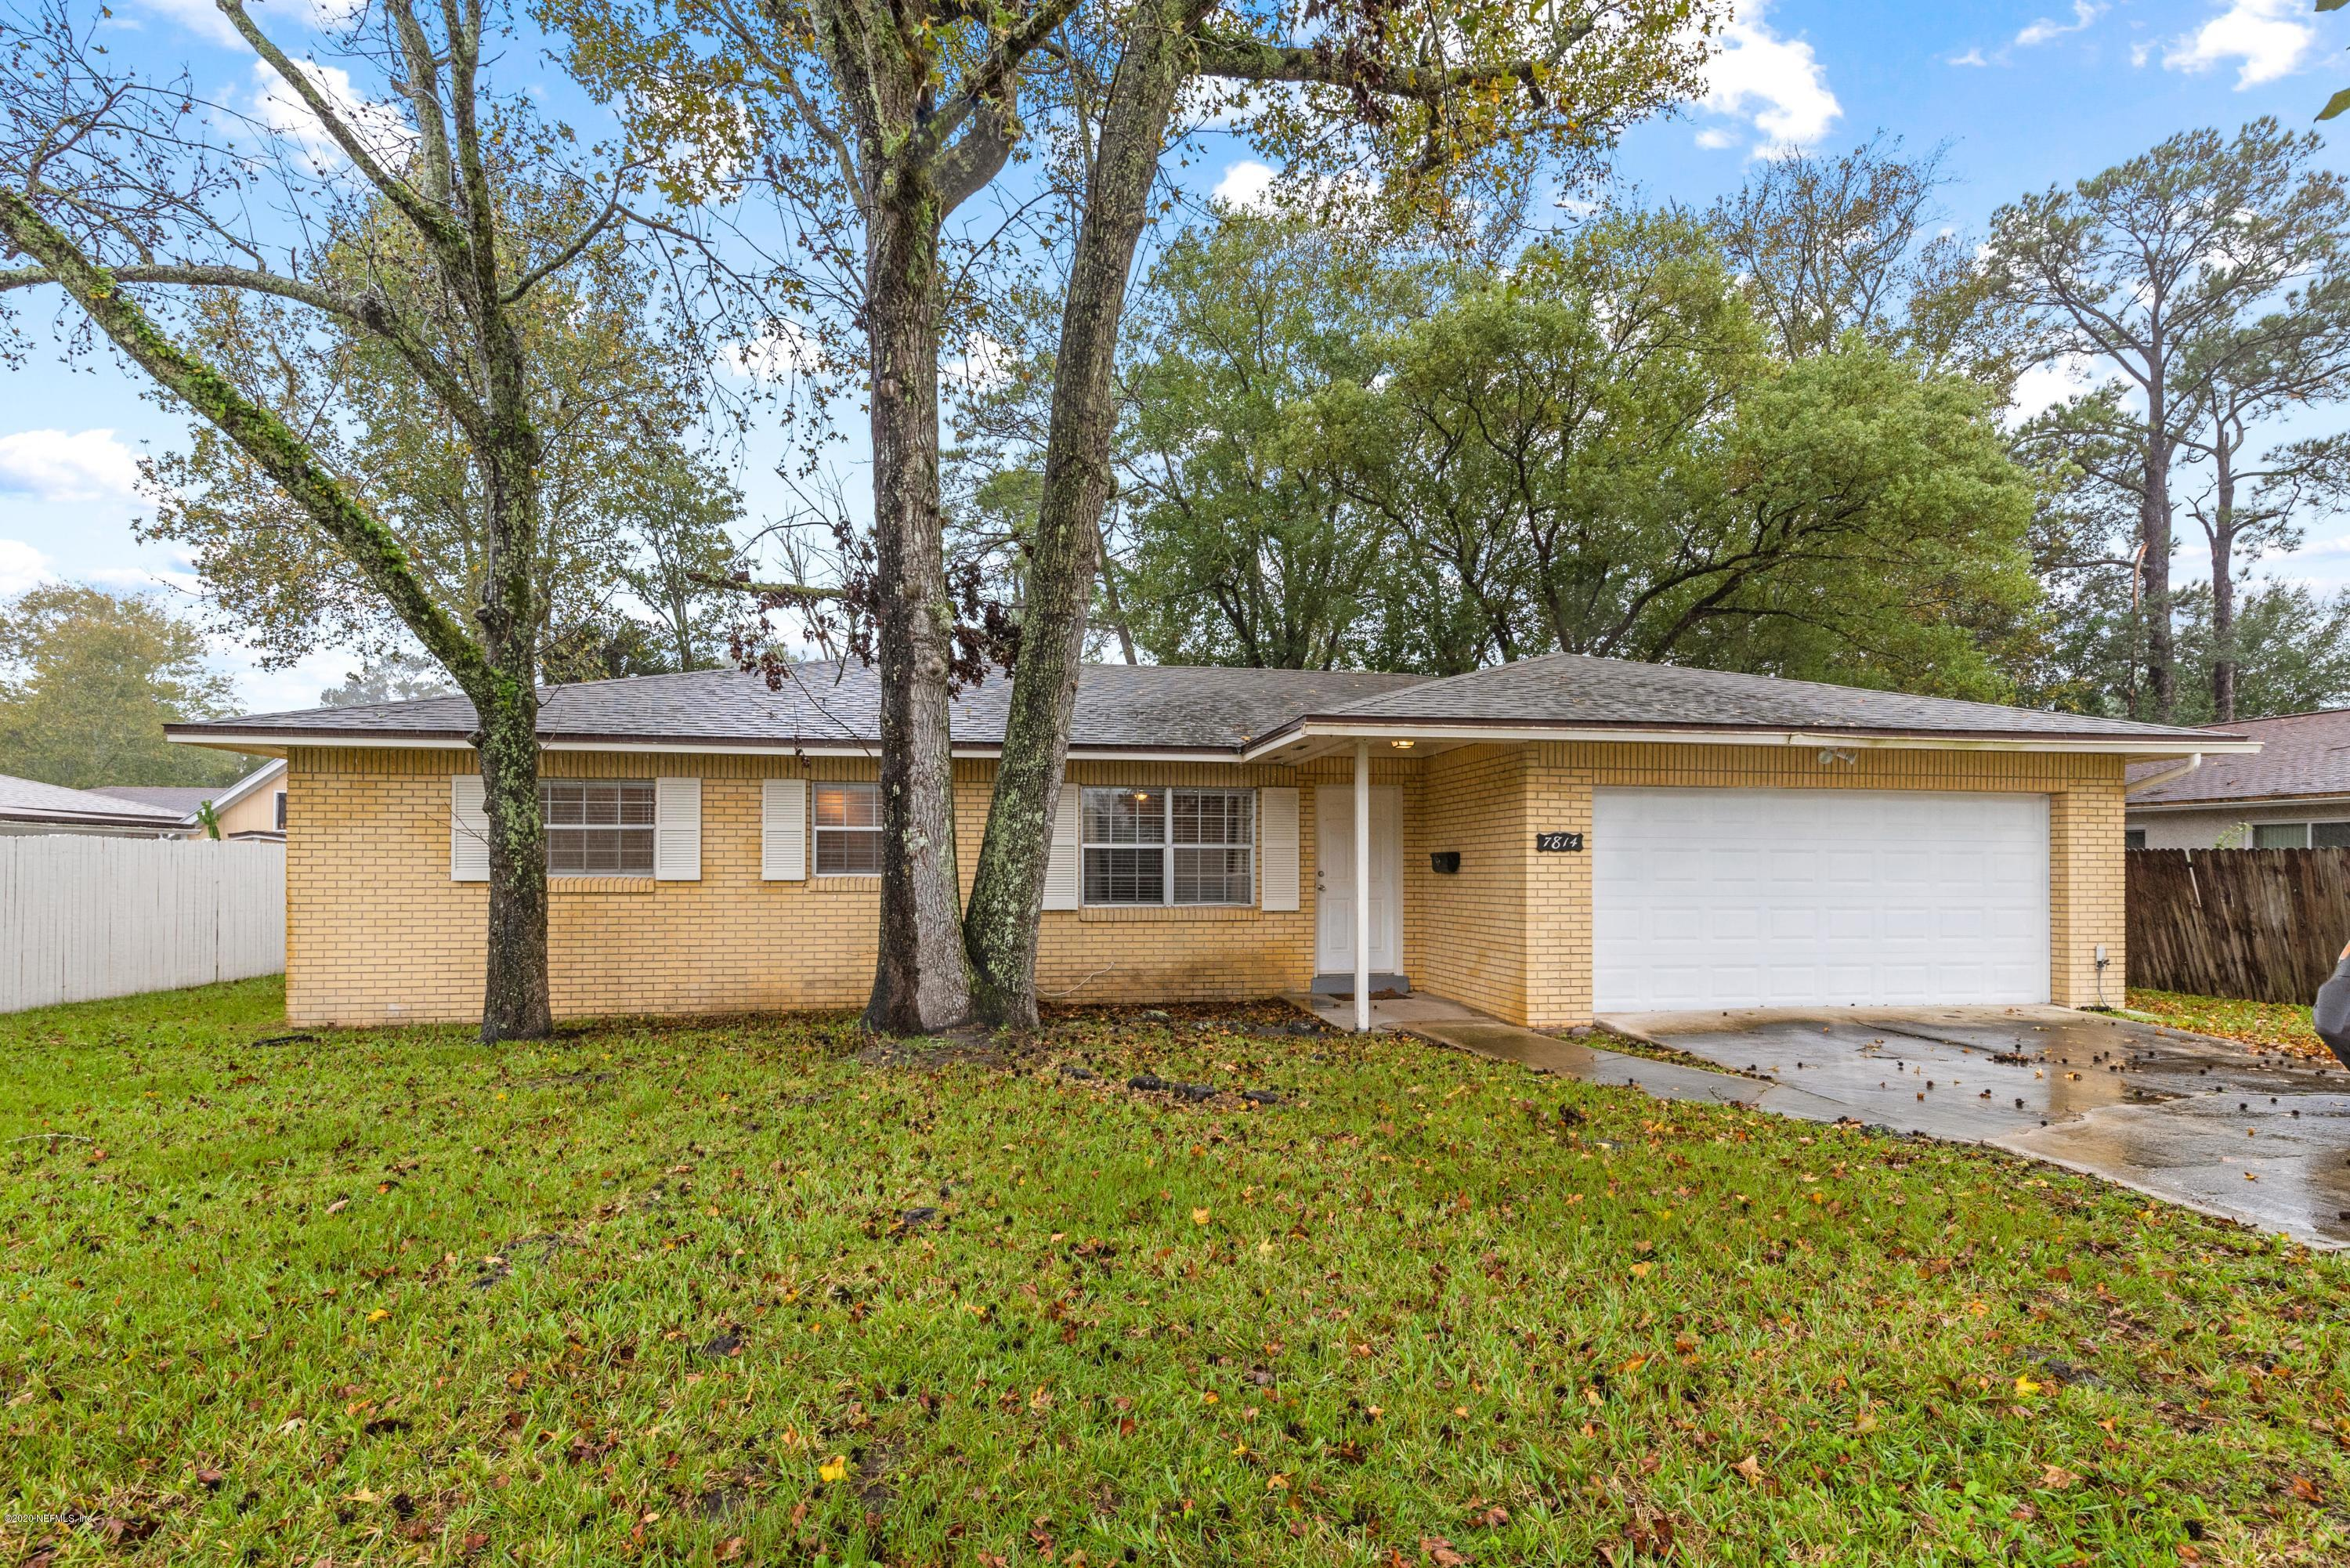 7814 PRAVER, JACKSONVILLE, FLORIDA 32217, 3 Bedrooms Bedrooms, ,2 BathroomsBathrooms,Rental,For Rent,PRAVER,1082651